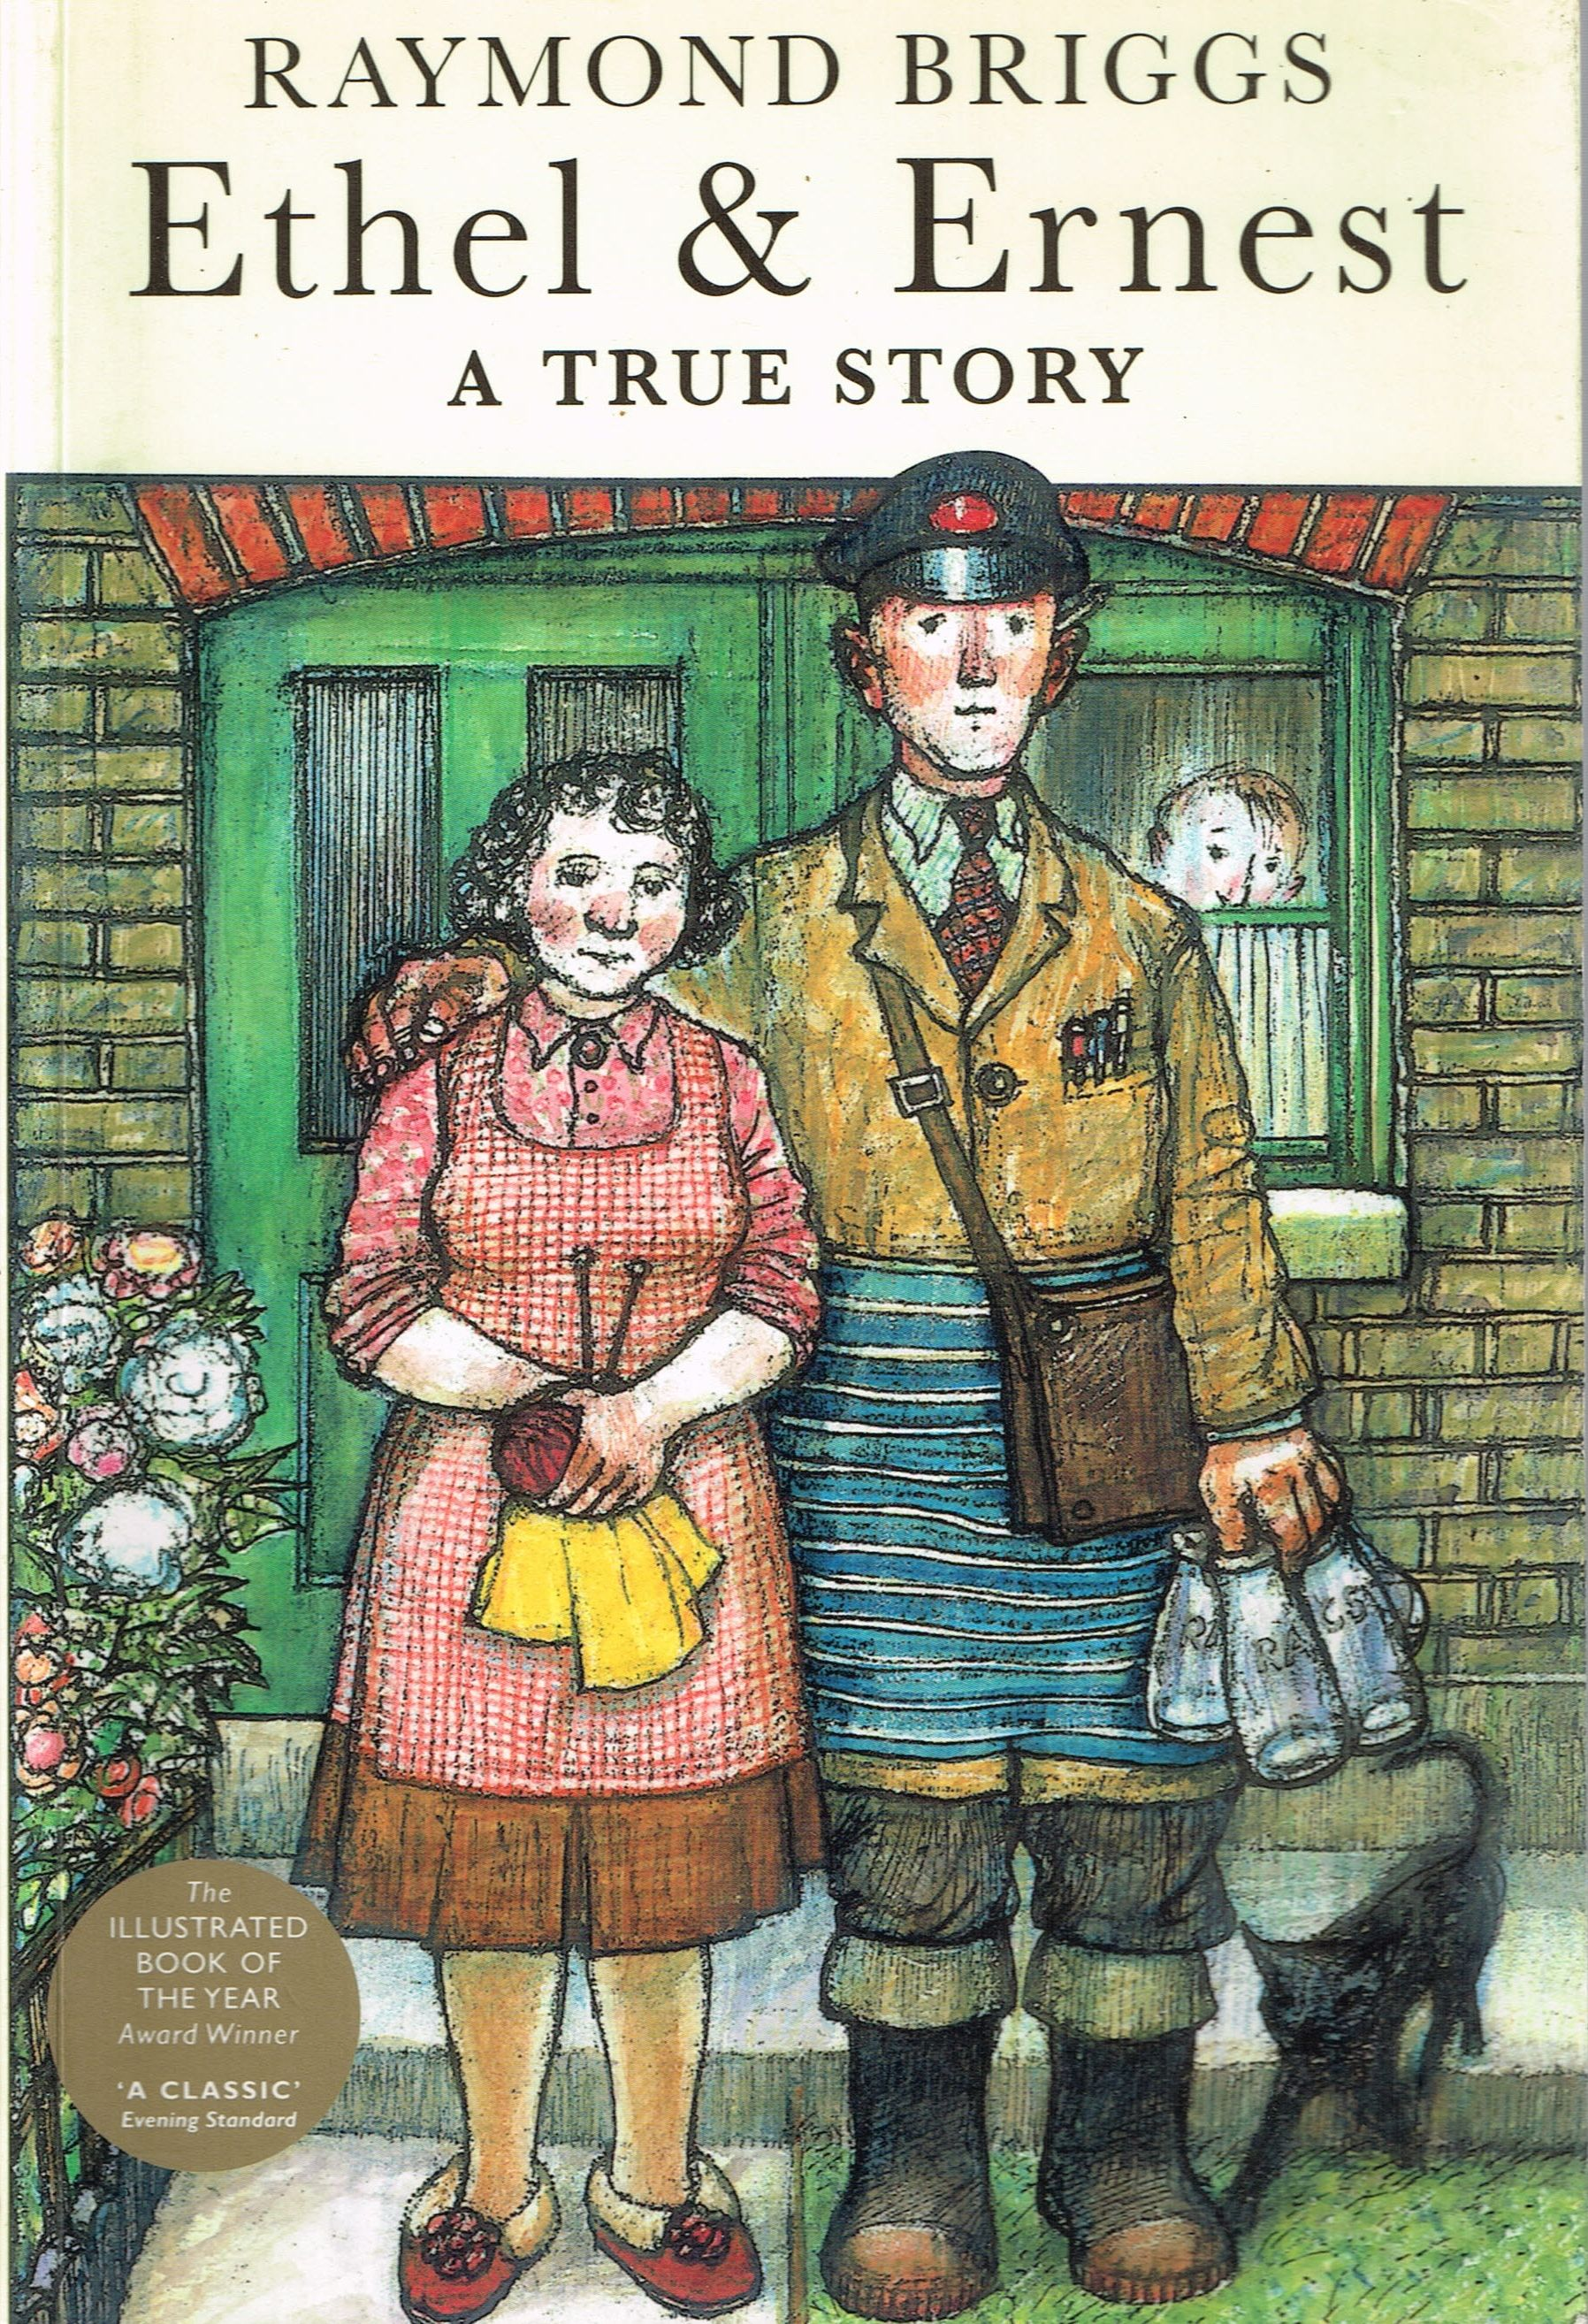 Ethel & Ernest (1998) by Raymond Briggs. An affectionate and interesting look at the life and times and attitudes of Brigg's parents, from 1928 to 1971. Graphic novel. Finished 15th Sept 2014, first read.